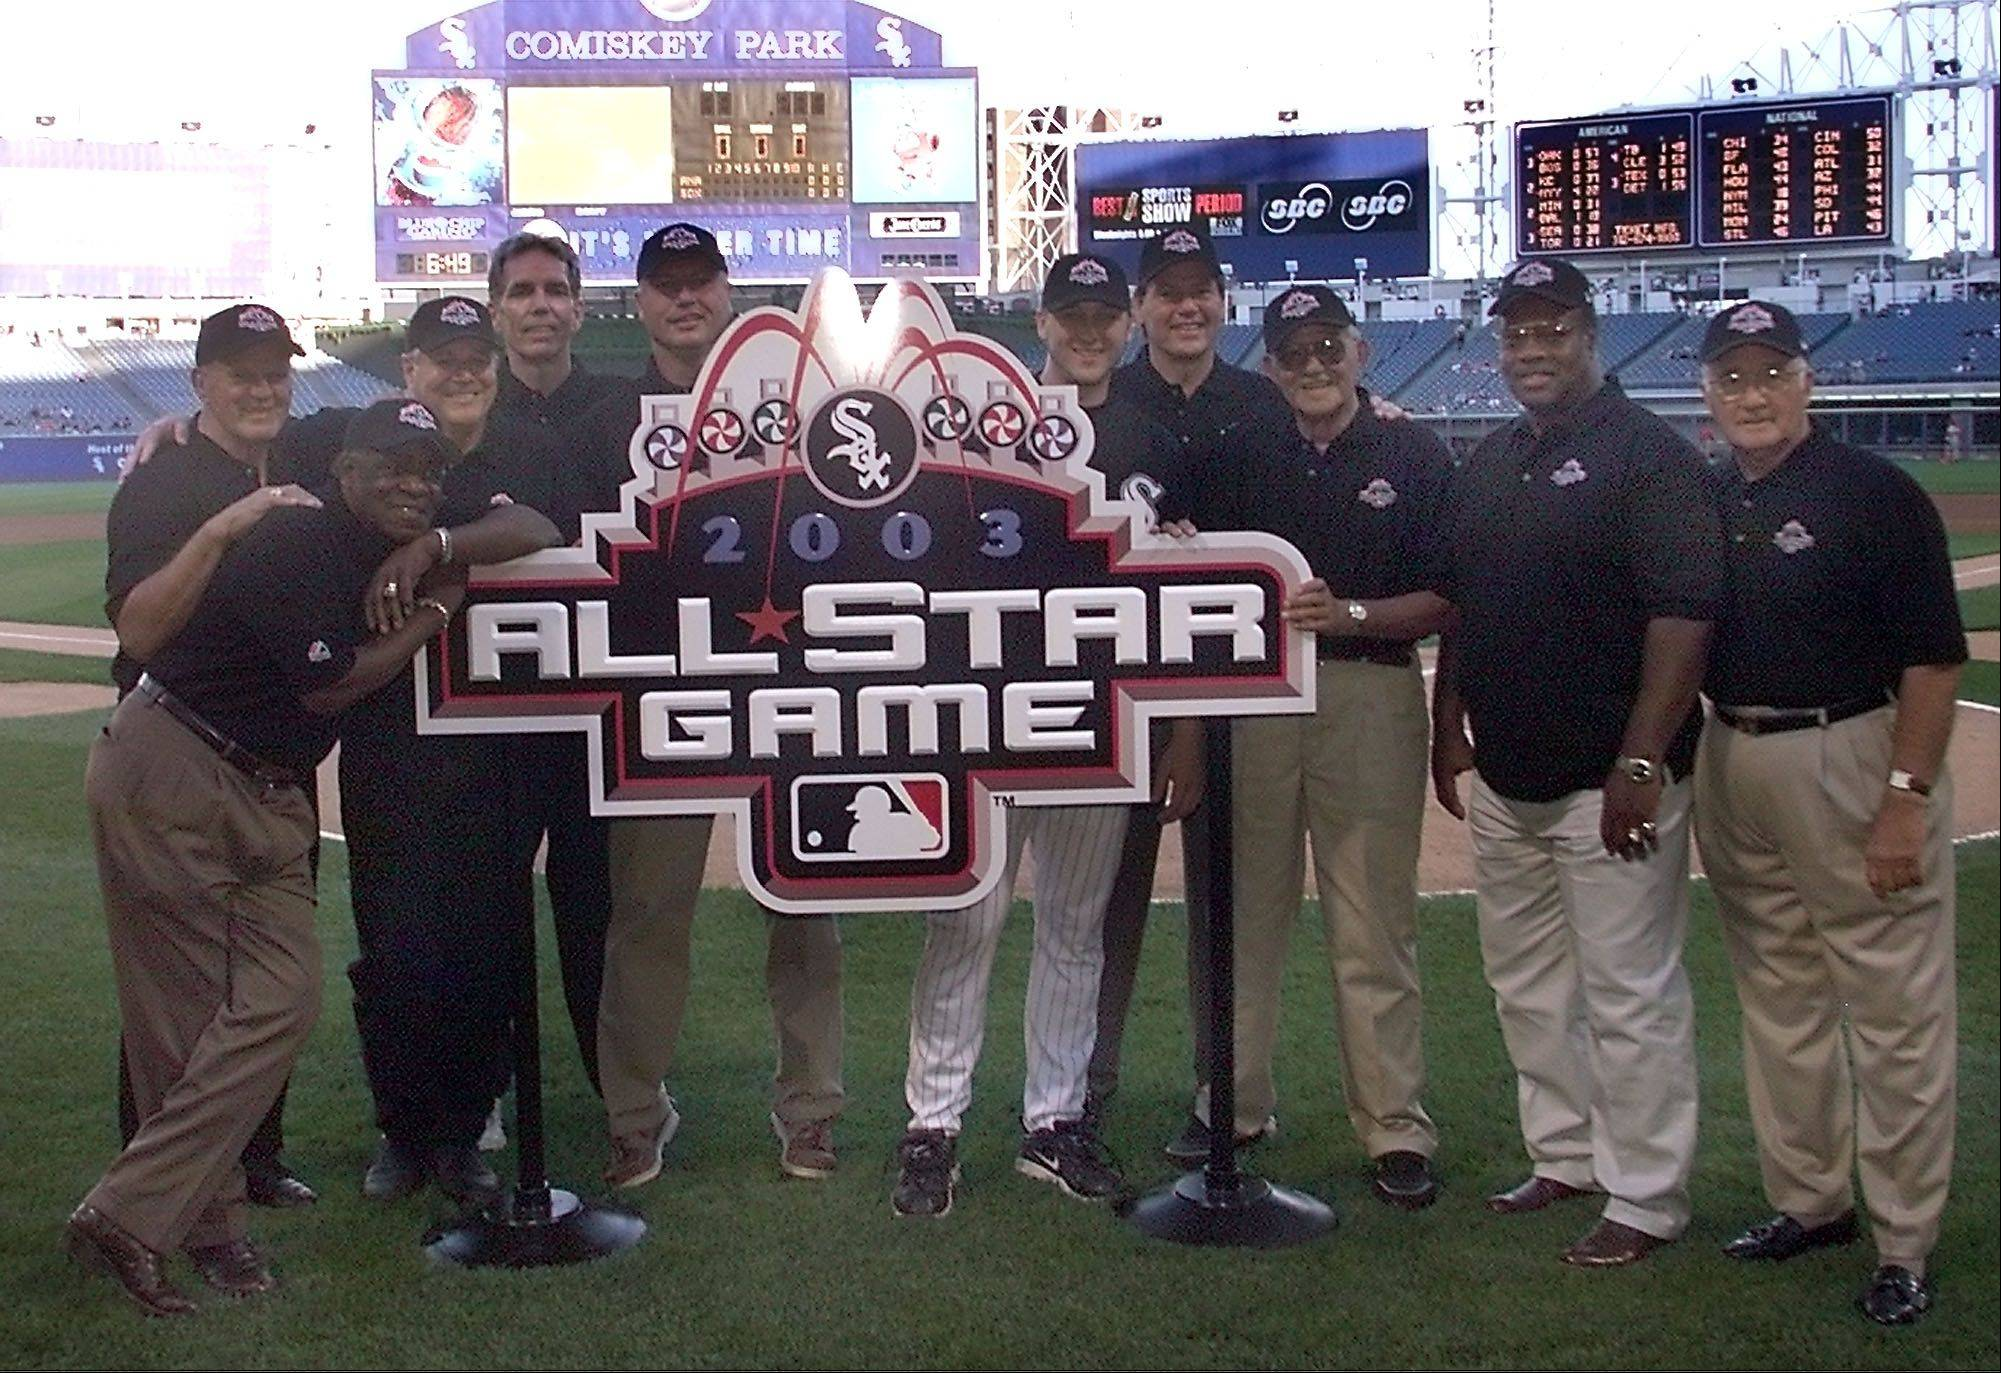 Former and current Chicago White Sox All-Stars, from left, Minnie Minoso (leaning on sign), Bill Skowron, Bill Melton, Ed Farmer, Ron Kittle, Mark Buehrle, Carlton Fisk, Chico Carrasquel, Carlos May and Billy Pierce pose with the logo for the 2003 All-Star Game before the White Sox's game against the Anaheim Angels at Comiskey Park in Chicago, Wednesday, Aug. 7, 2002.